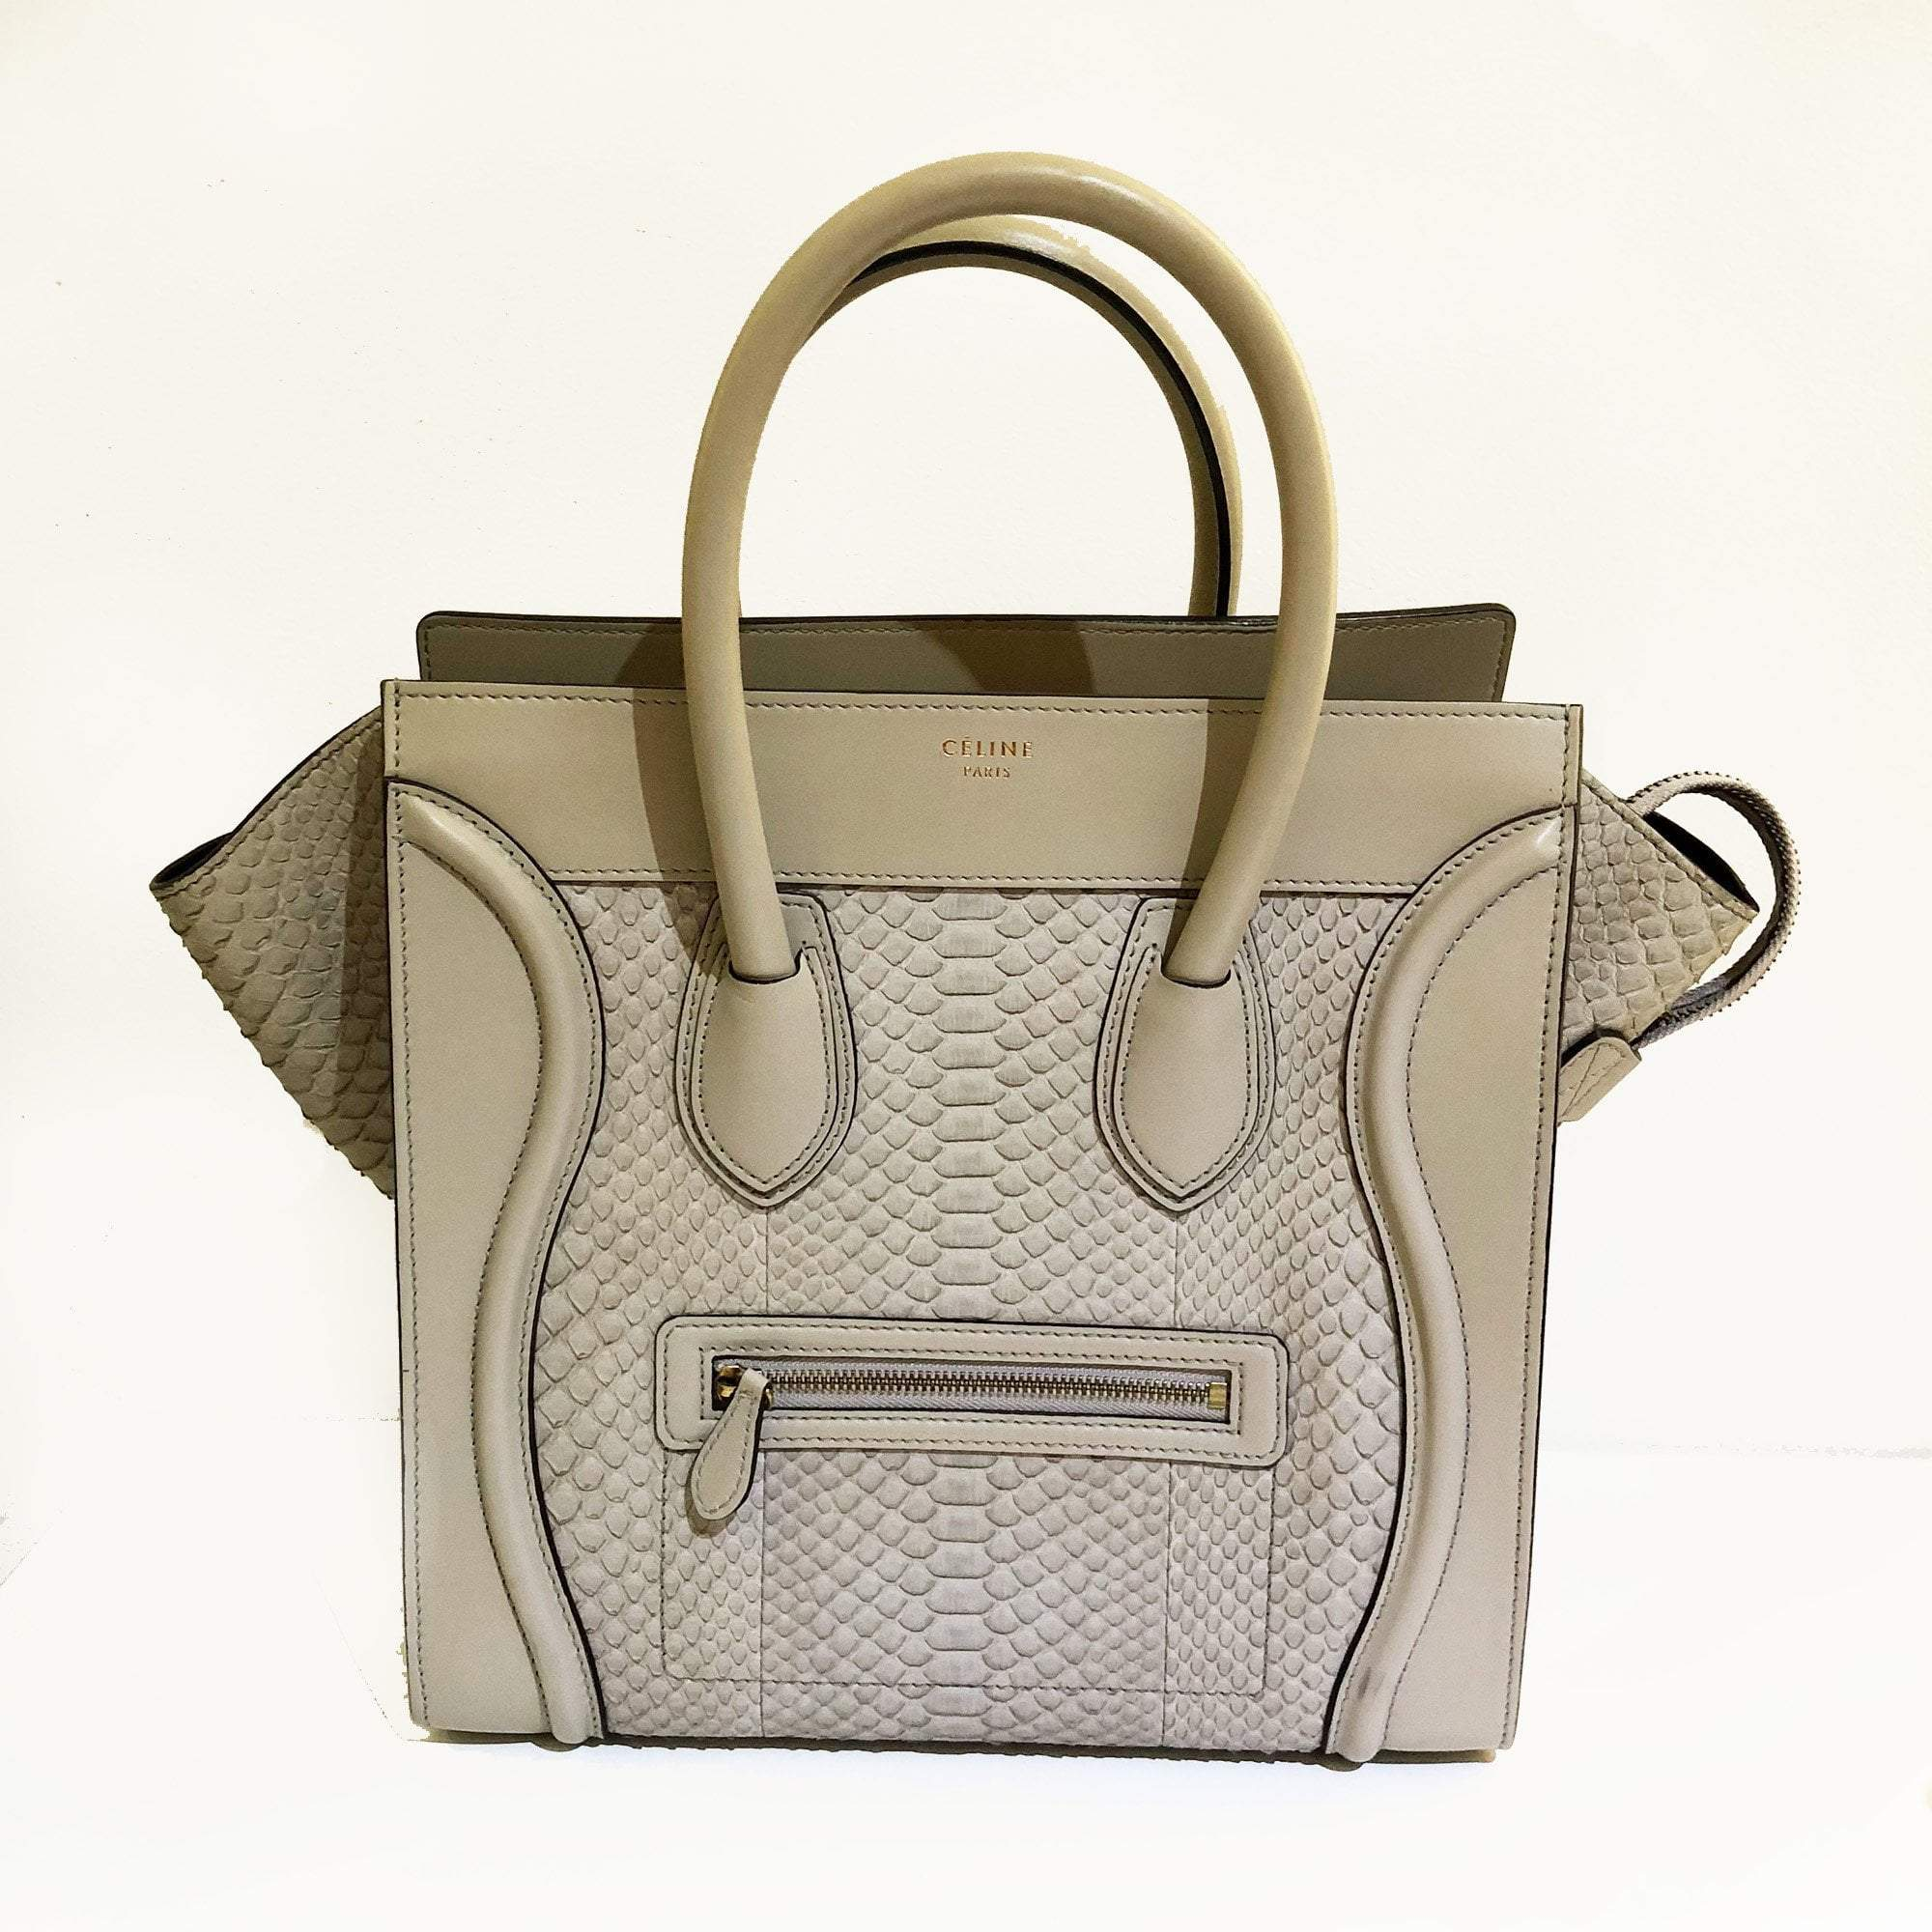 Celine Luggage Python Medium Tote Bag